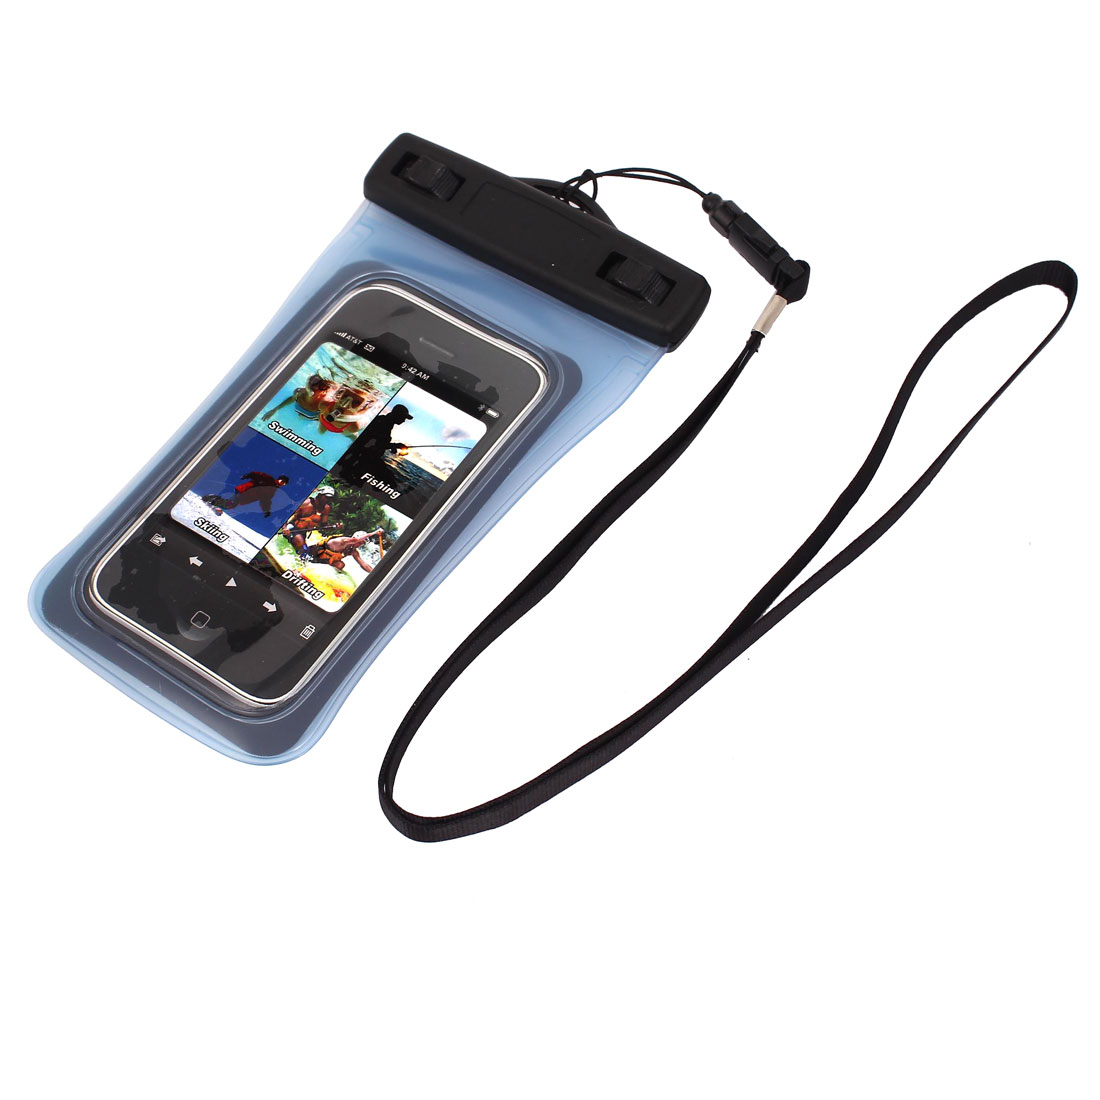 Unique Bargains Waterproof Dry Bag Protector Case Cover Pouch Clear Blue for 4  Cell Phone